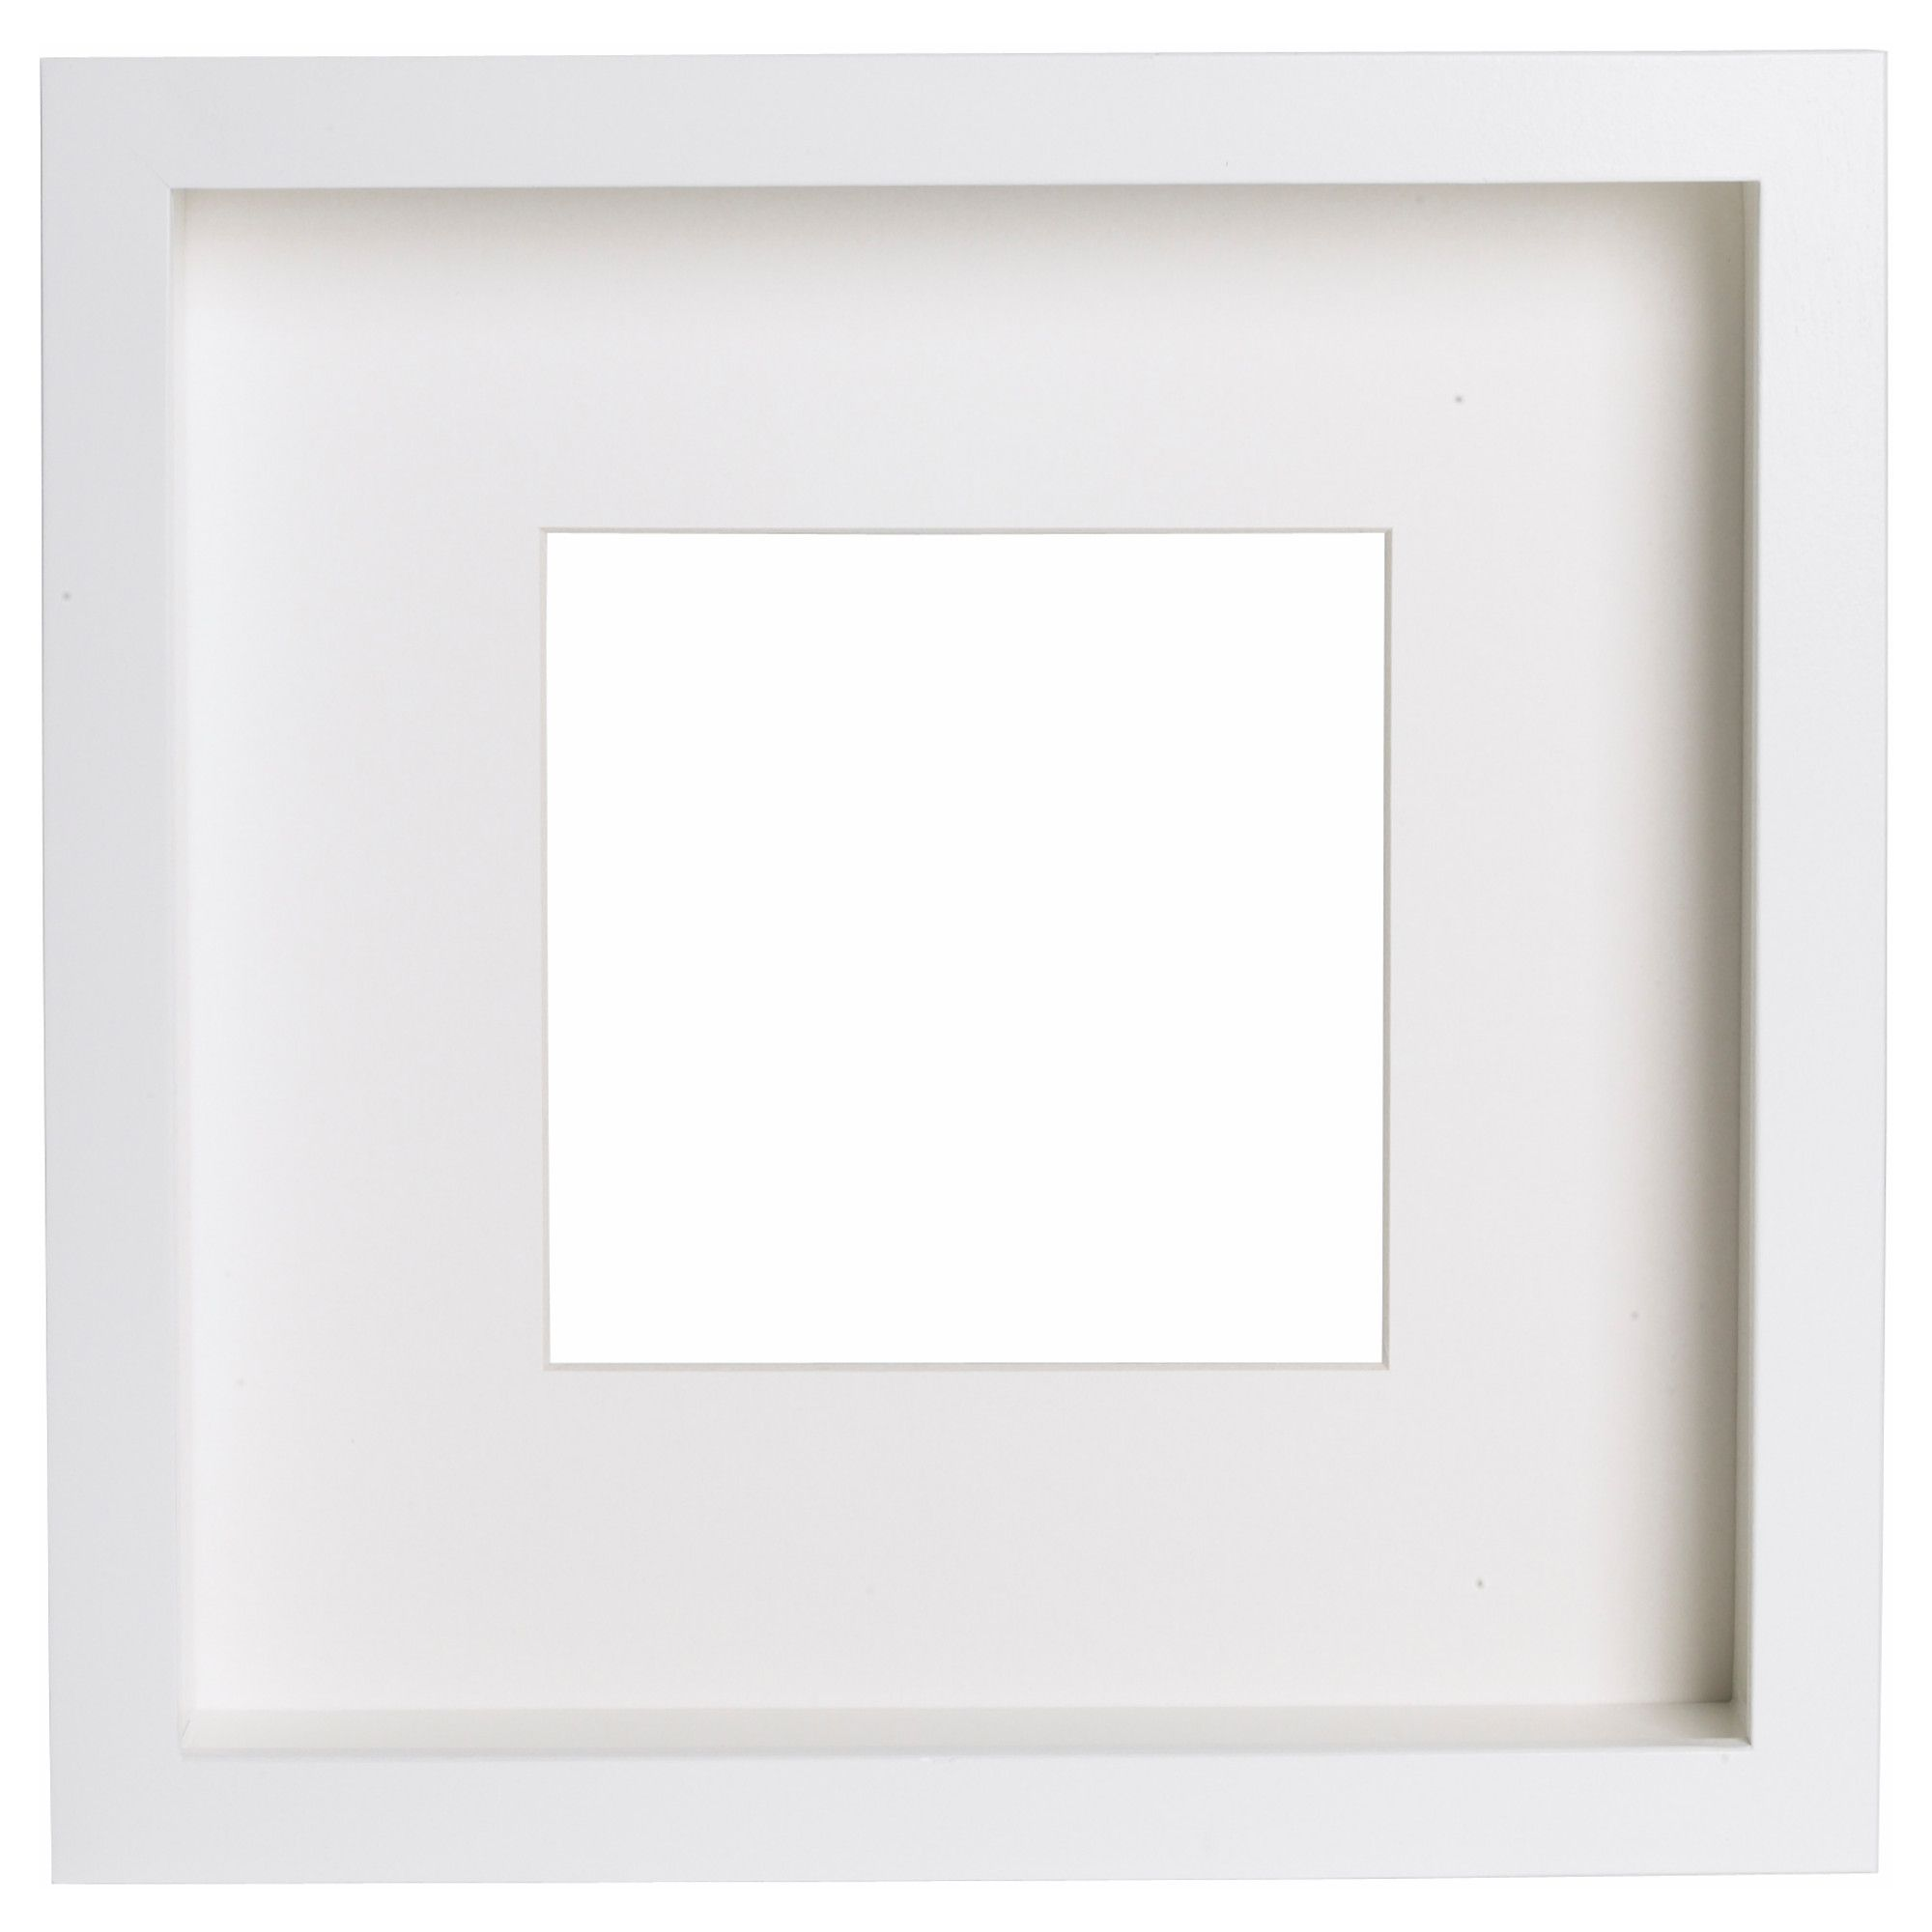 Ikea Us Furniture And Home Furnishings Picture Frame Display Box Picture Frames Ribba Frame